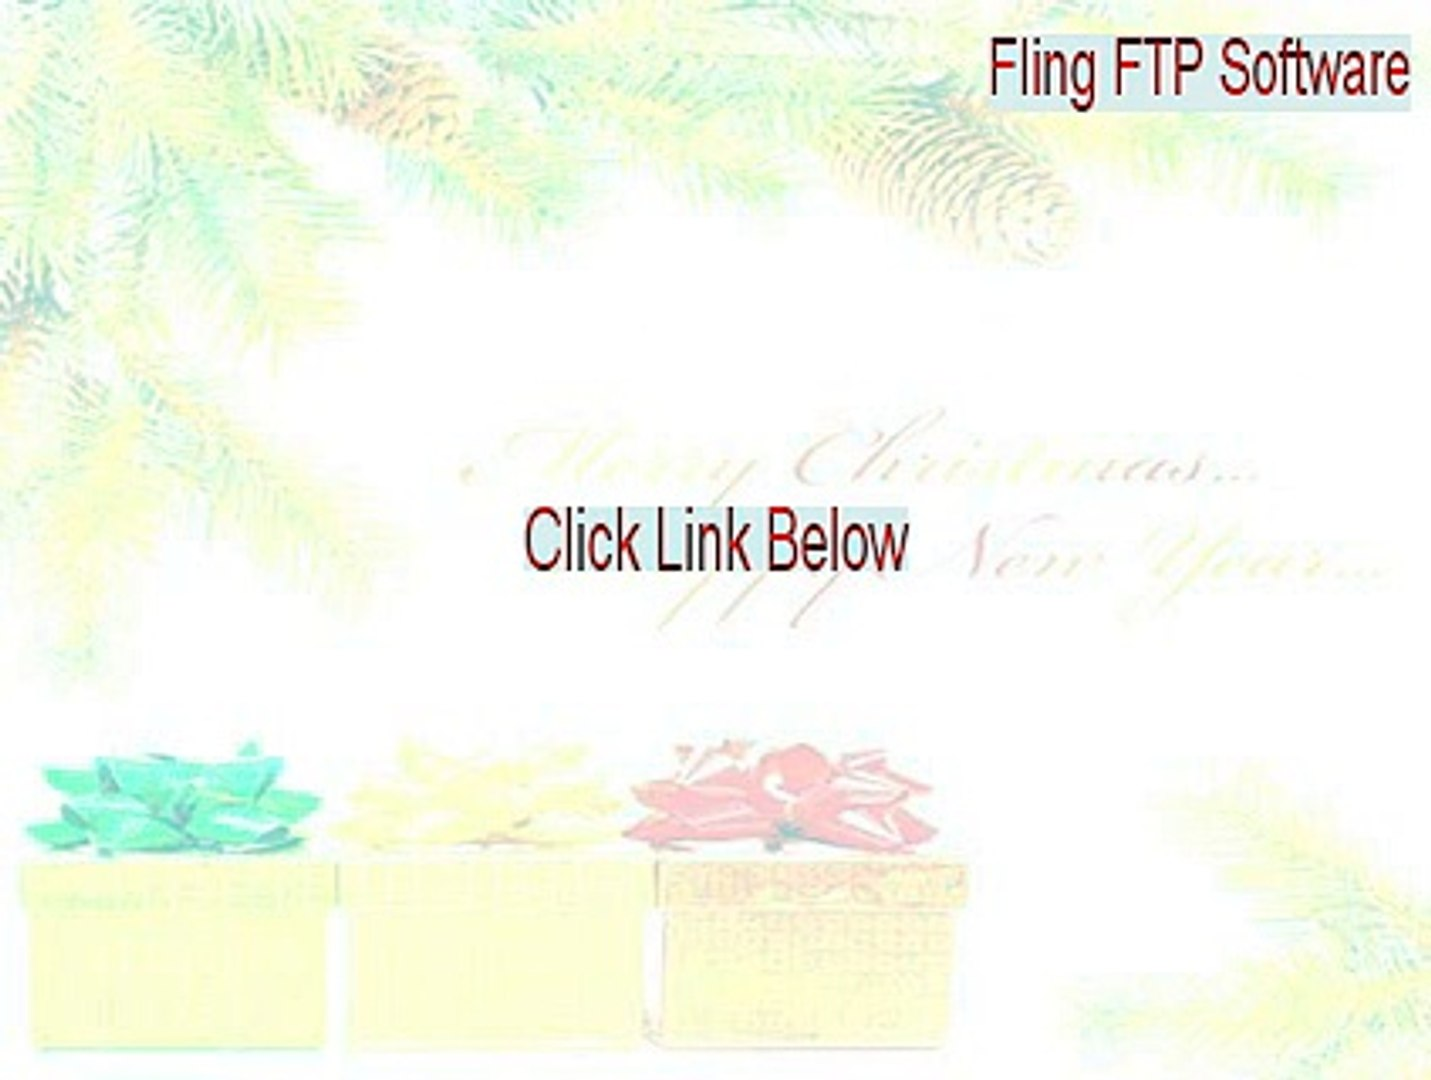 Fling FTP Software Cracked (Download Now)